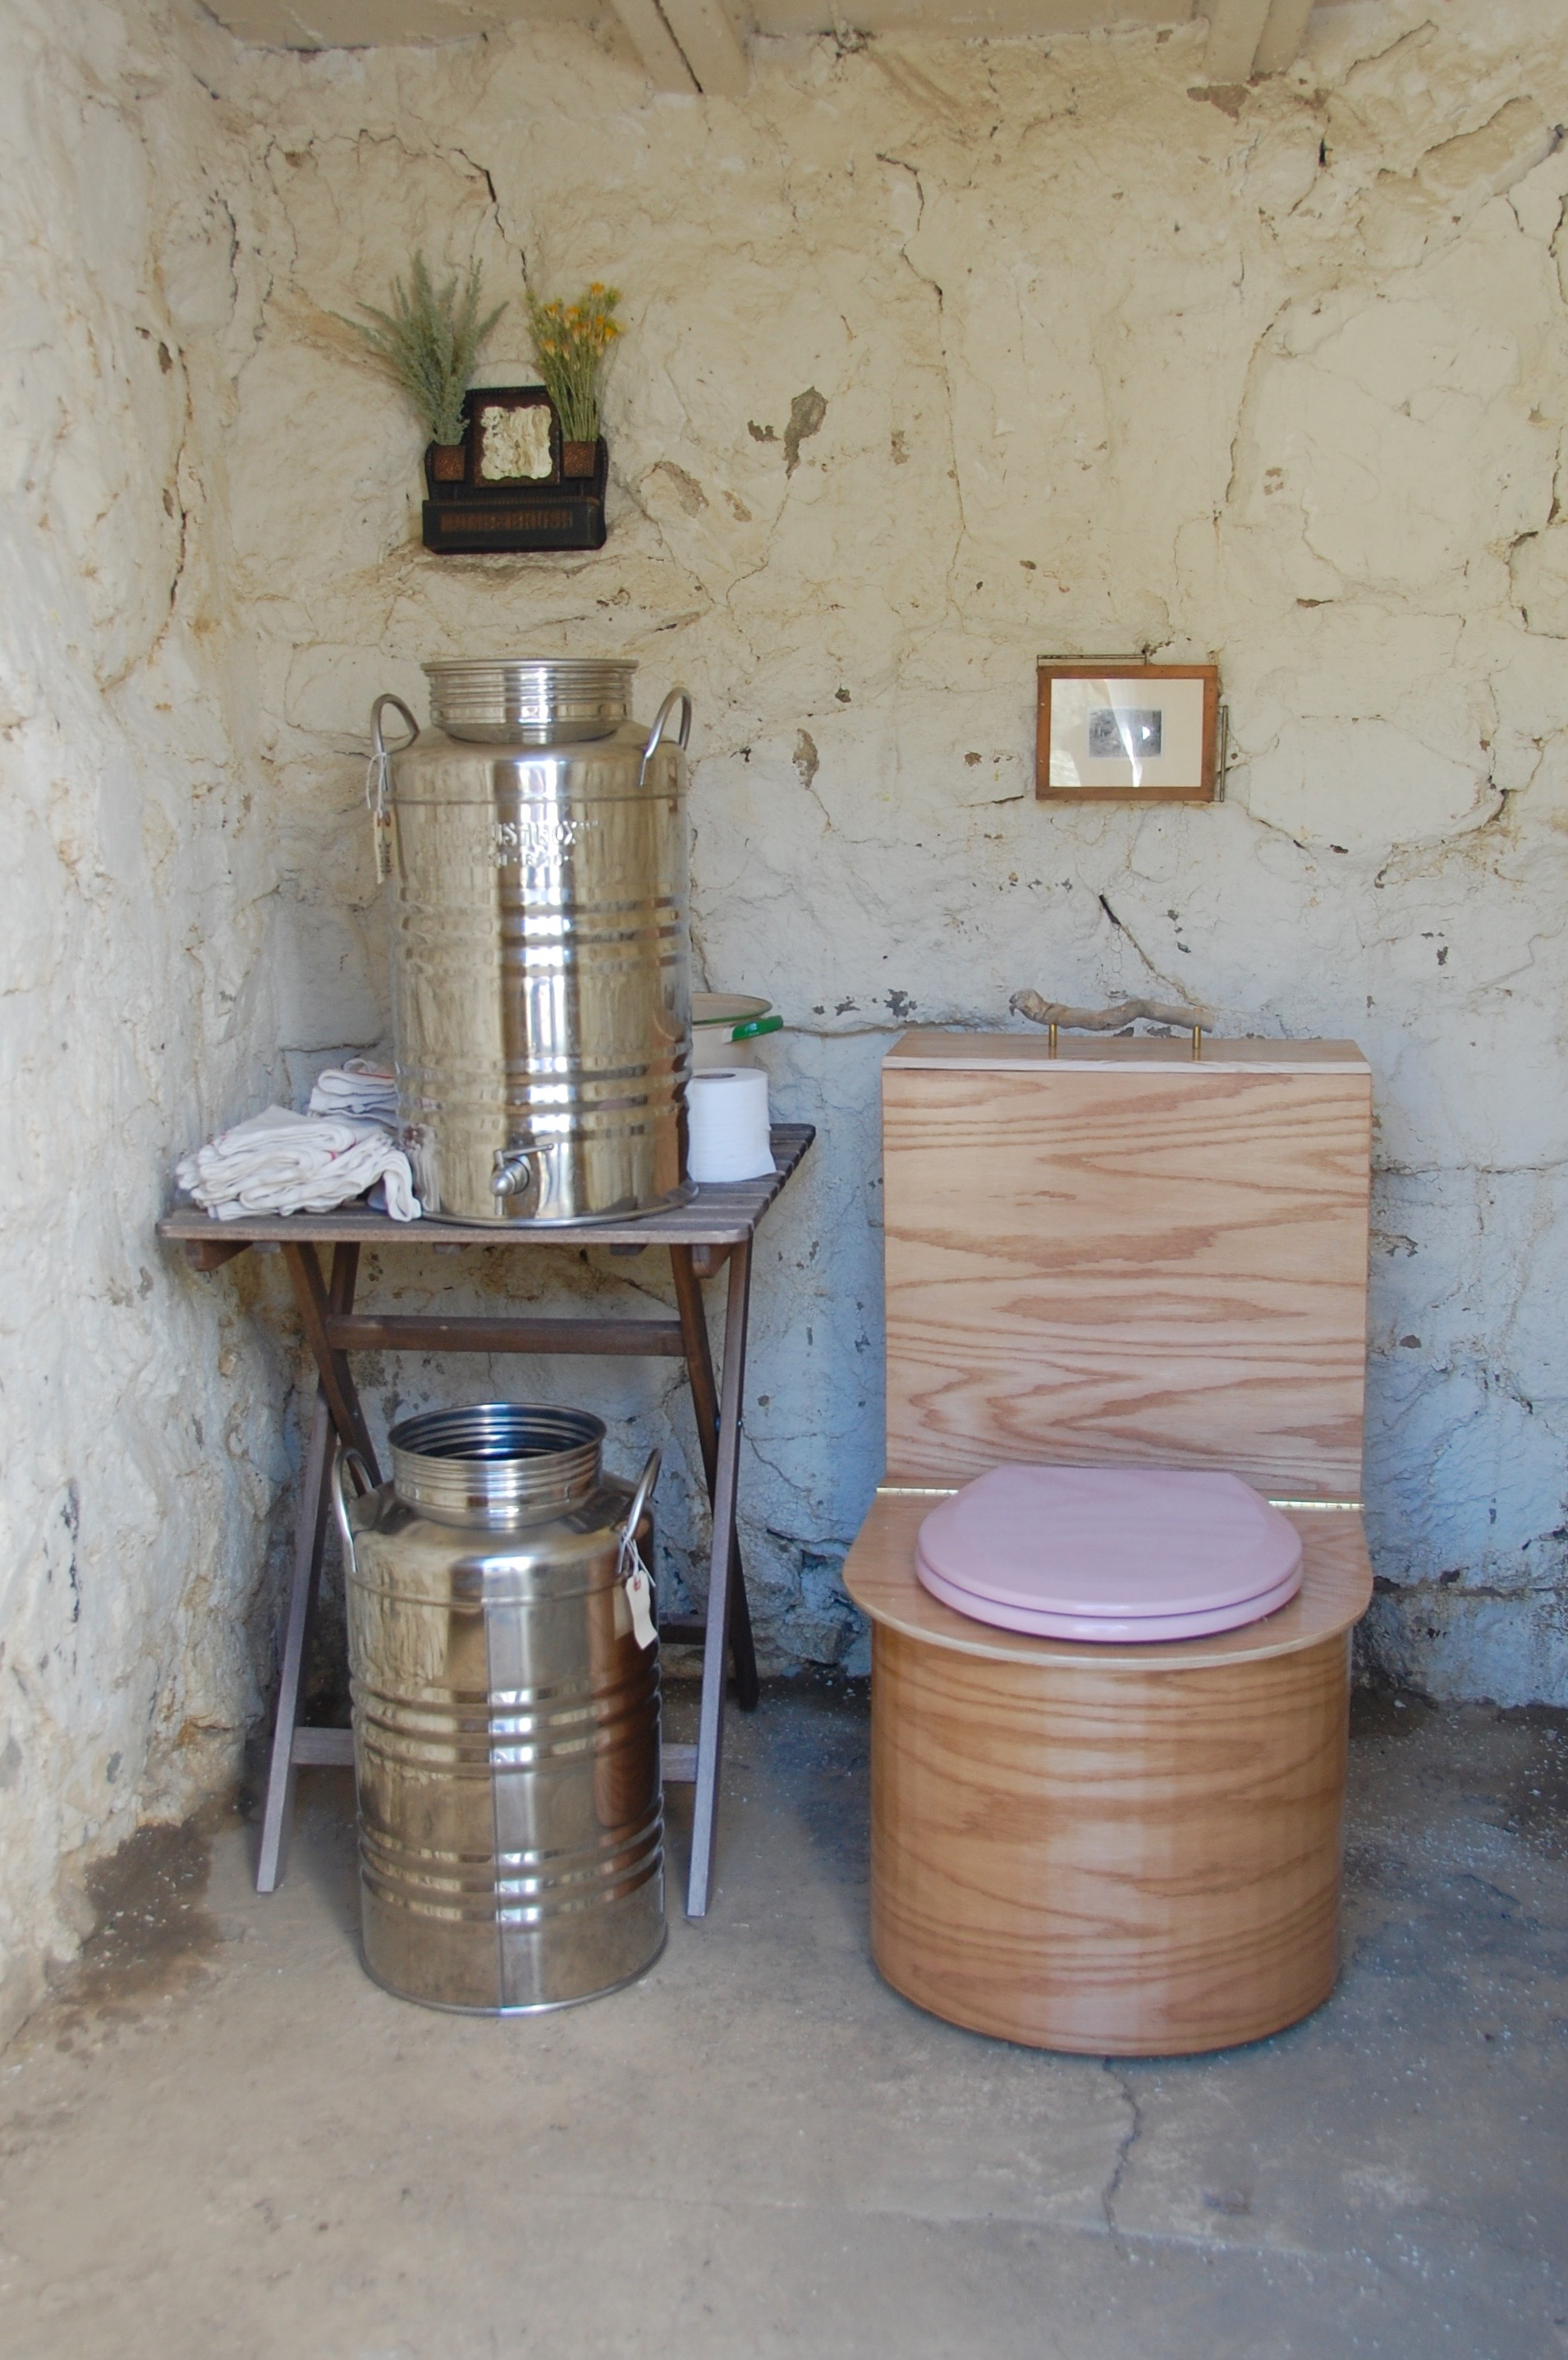 Components of a simple off grid bathroom. Off Grid Bathroom   Cabin Dweller s Textbook